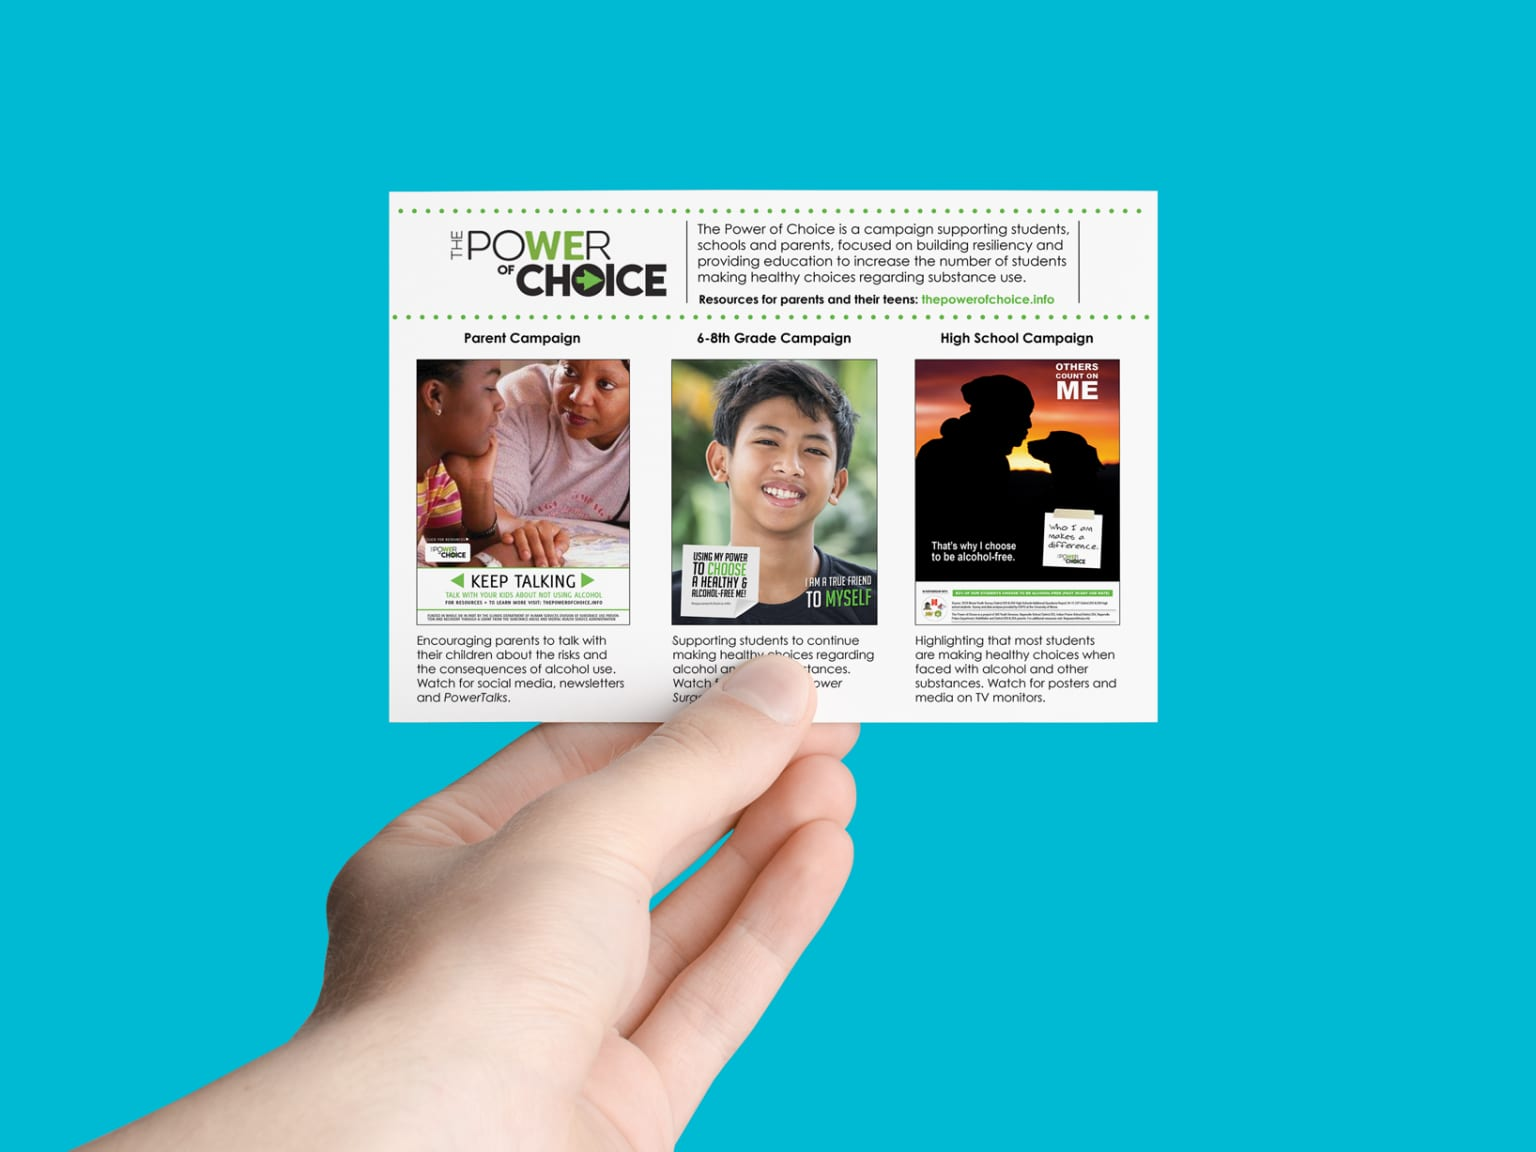 Power of Choice Promotional Materials